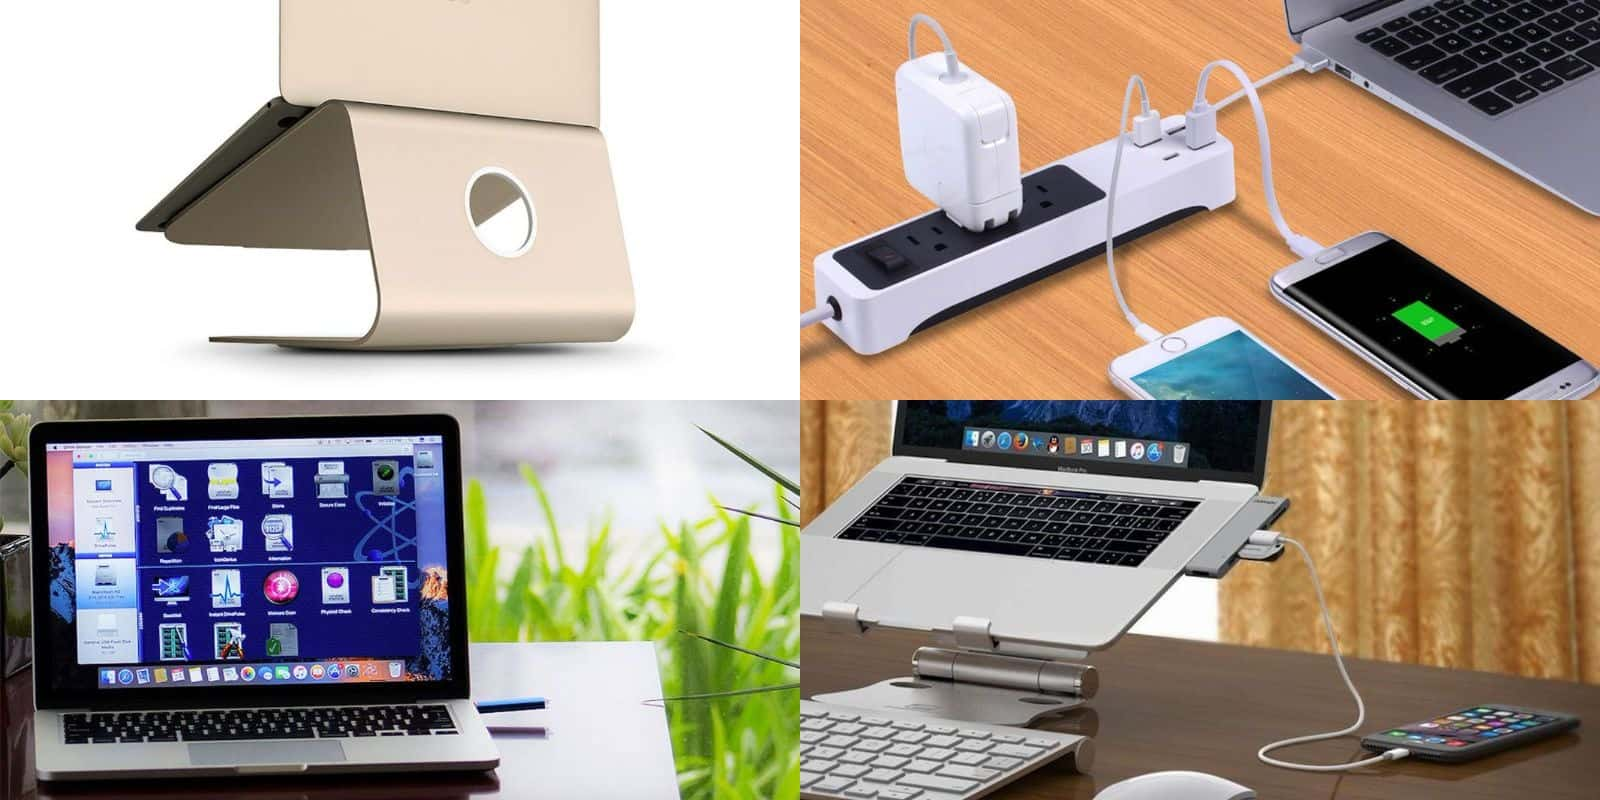 We've rounded up the best deals on essential accessories for your Macbook.